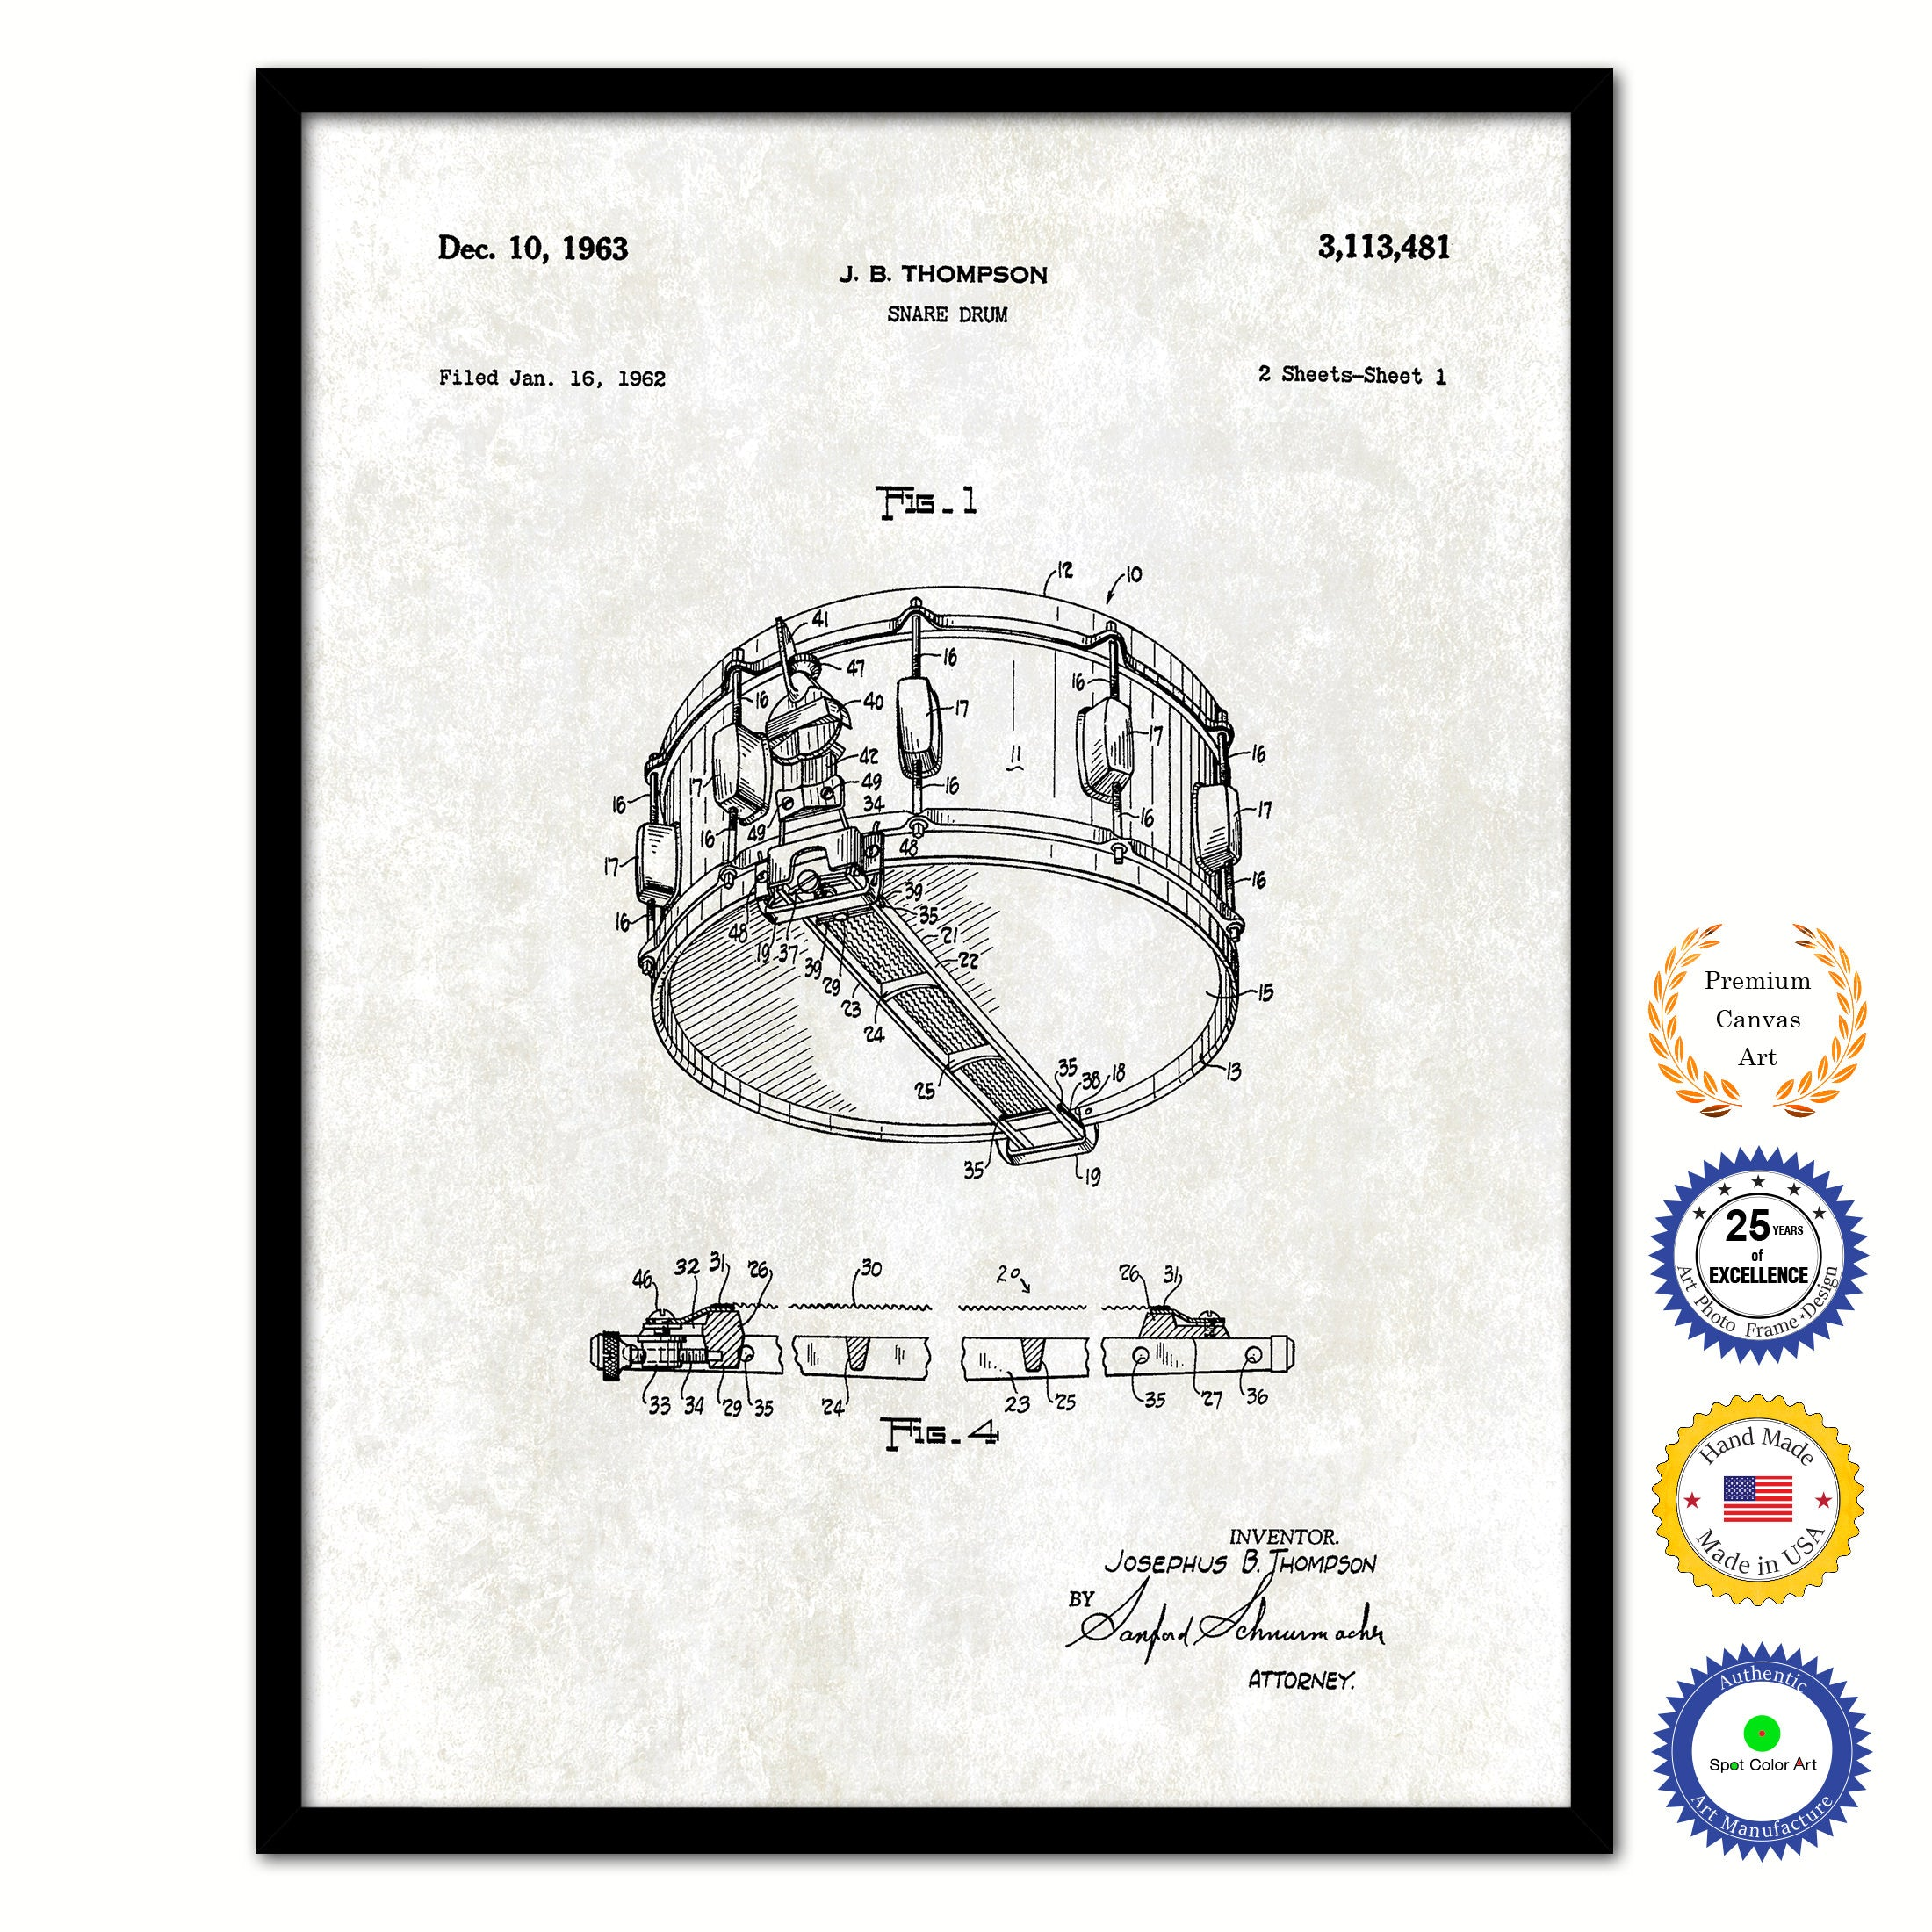 1963 Snare Drum Vintage Patent Artwork Black Framed Canvas Print Diagram Old Art On Custom Home Decor Wall Decoration Great For Gifts